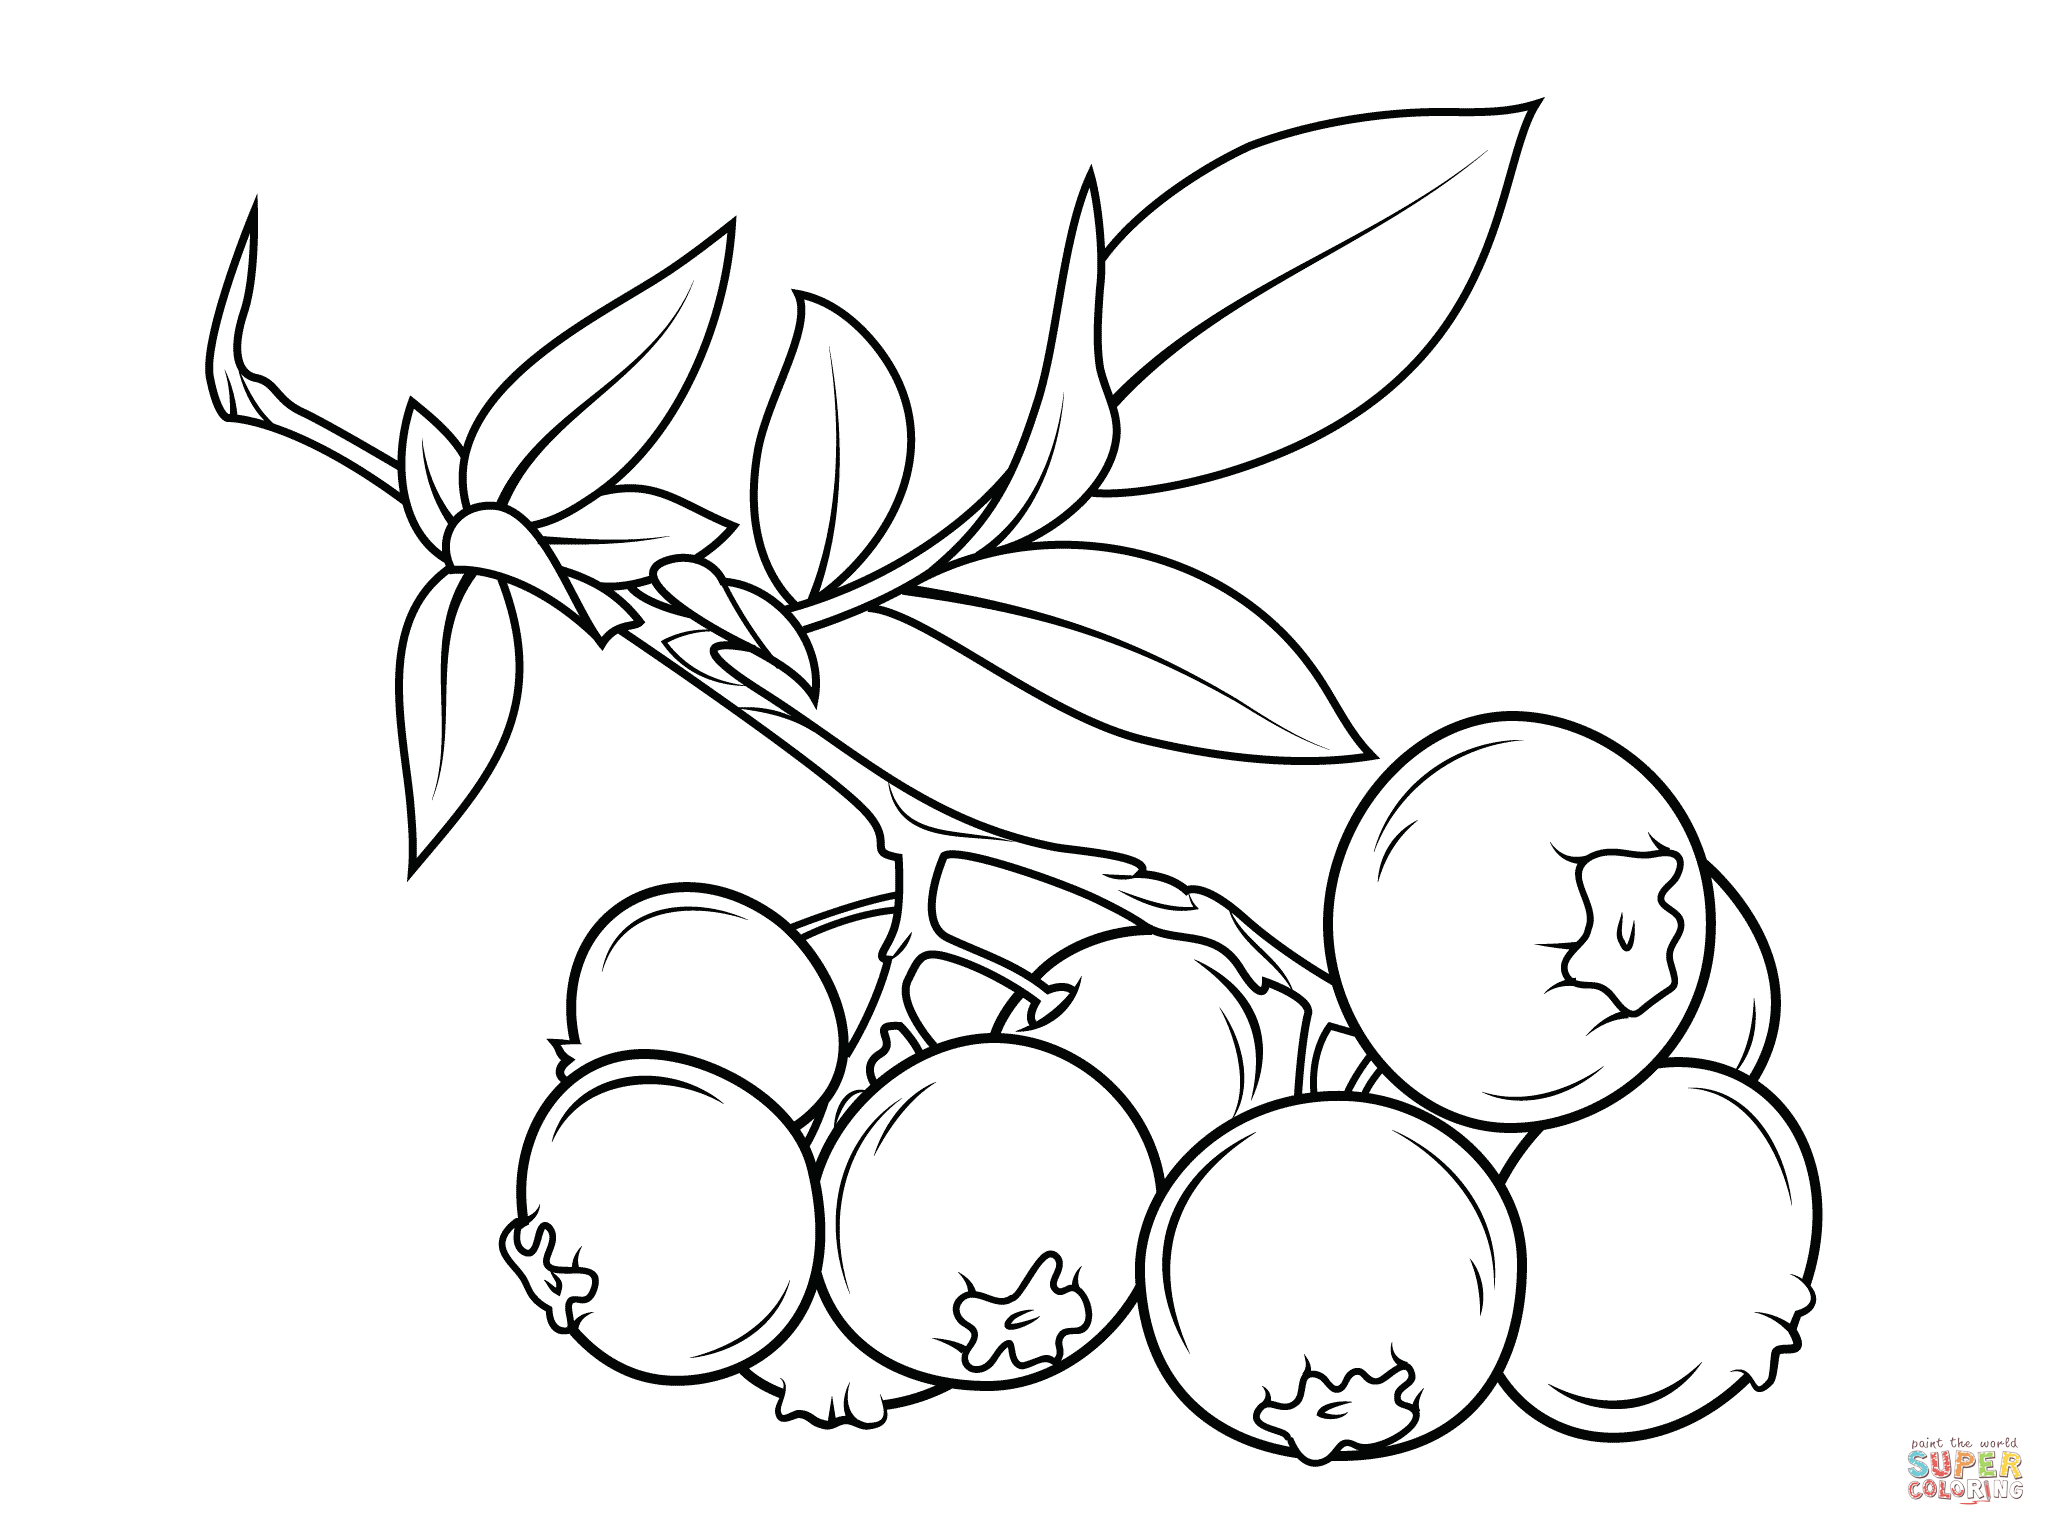 Blueberry Branch Coloring Pages Line Art Images Free Coloring Pages